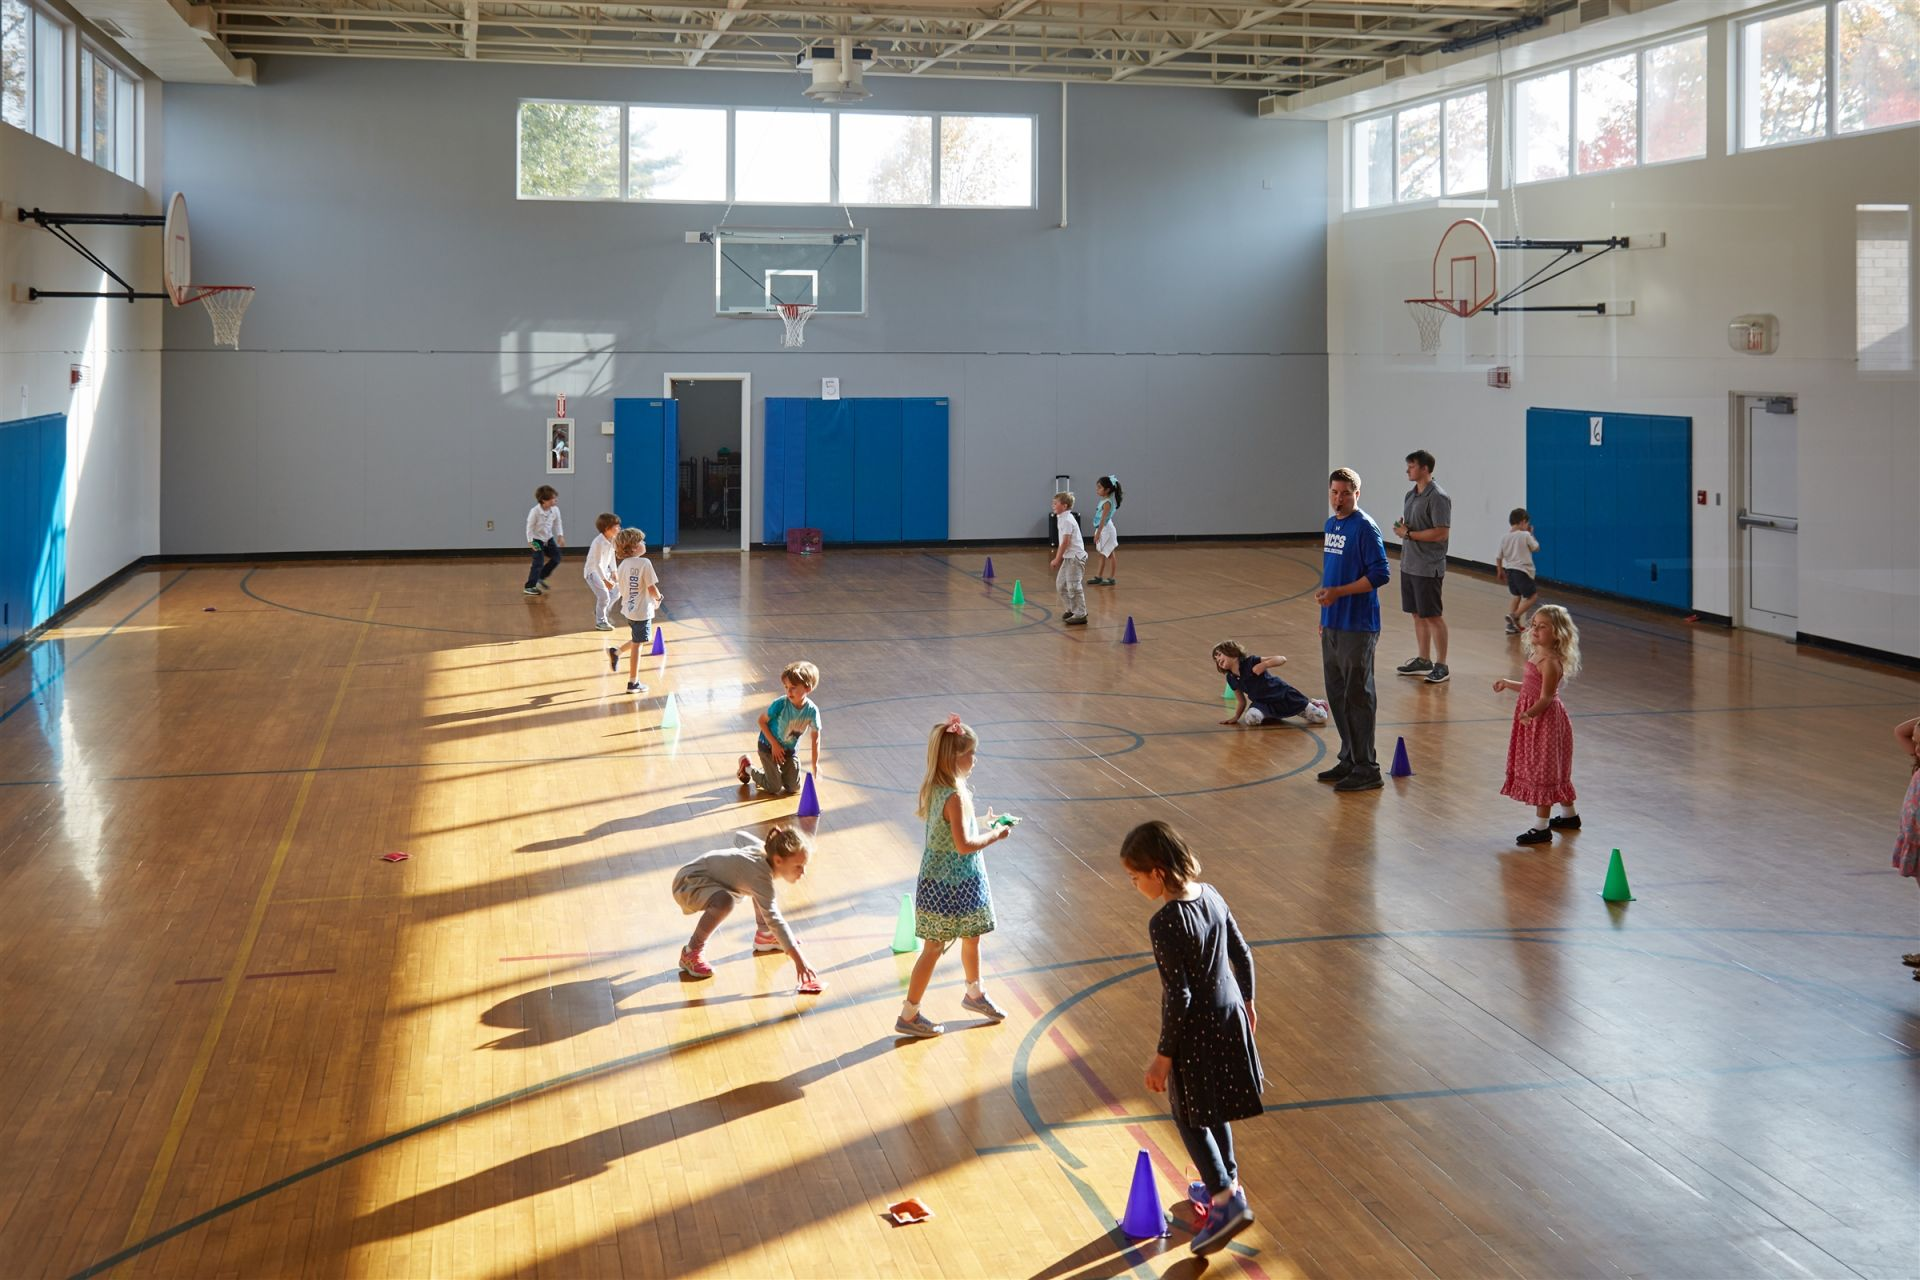 The smaller of the school's two indoor athletic facilities, the Middle School Gymnasium plays host to sports such as volleyball and basketball, as well as Lower School physical education classes and Middle School activities.